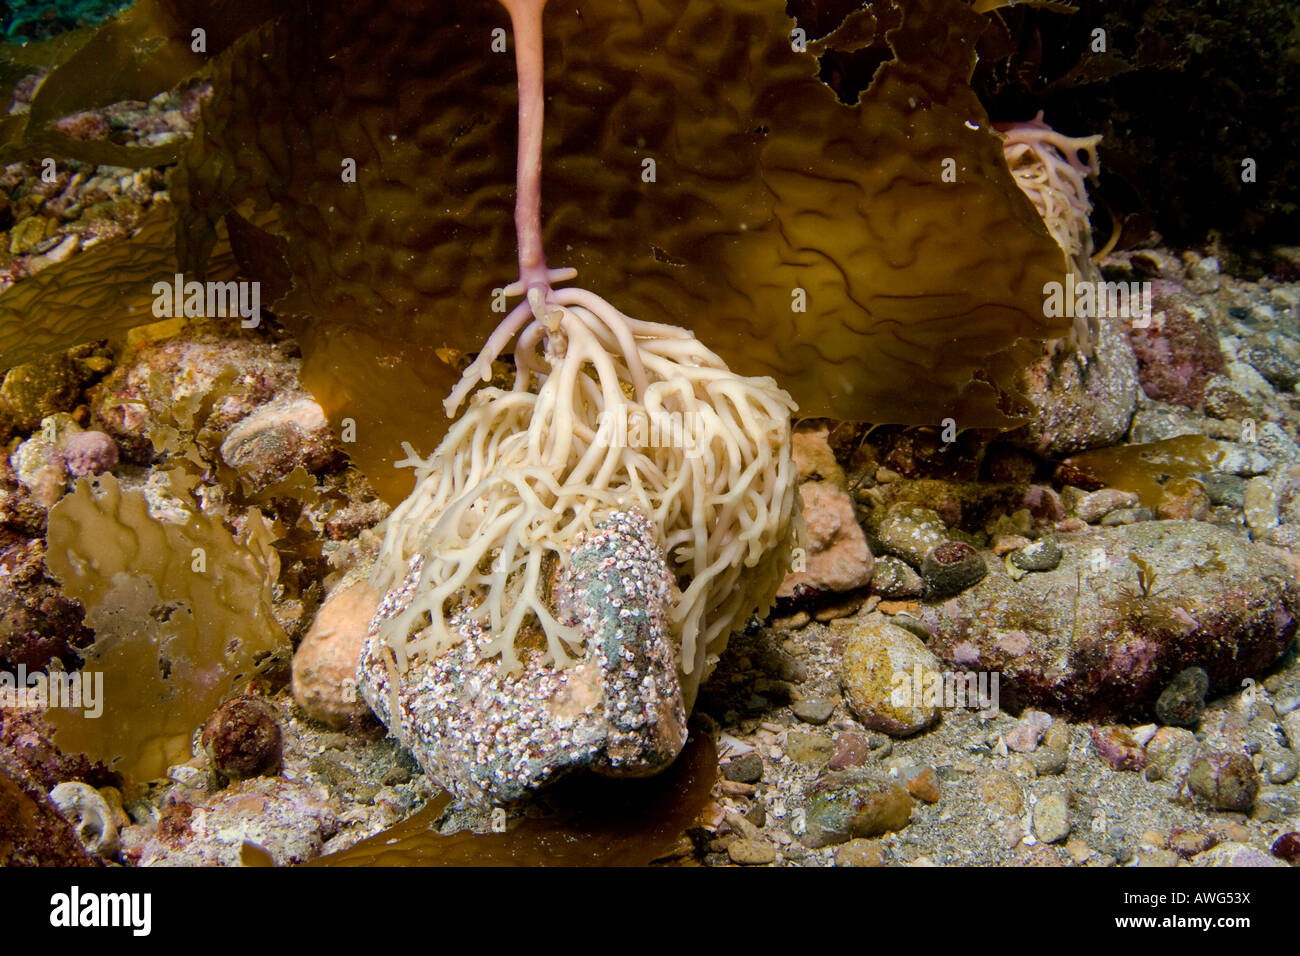 The holdfast is the root system anchoring giant kelp, Macrocystis pyrifera, to the sea floor, Catalina Island, California, - Stock Image